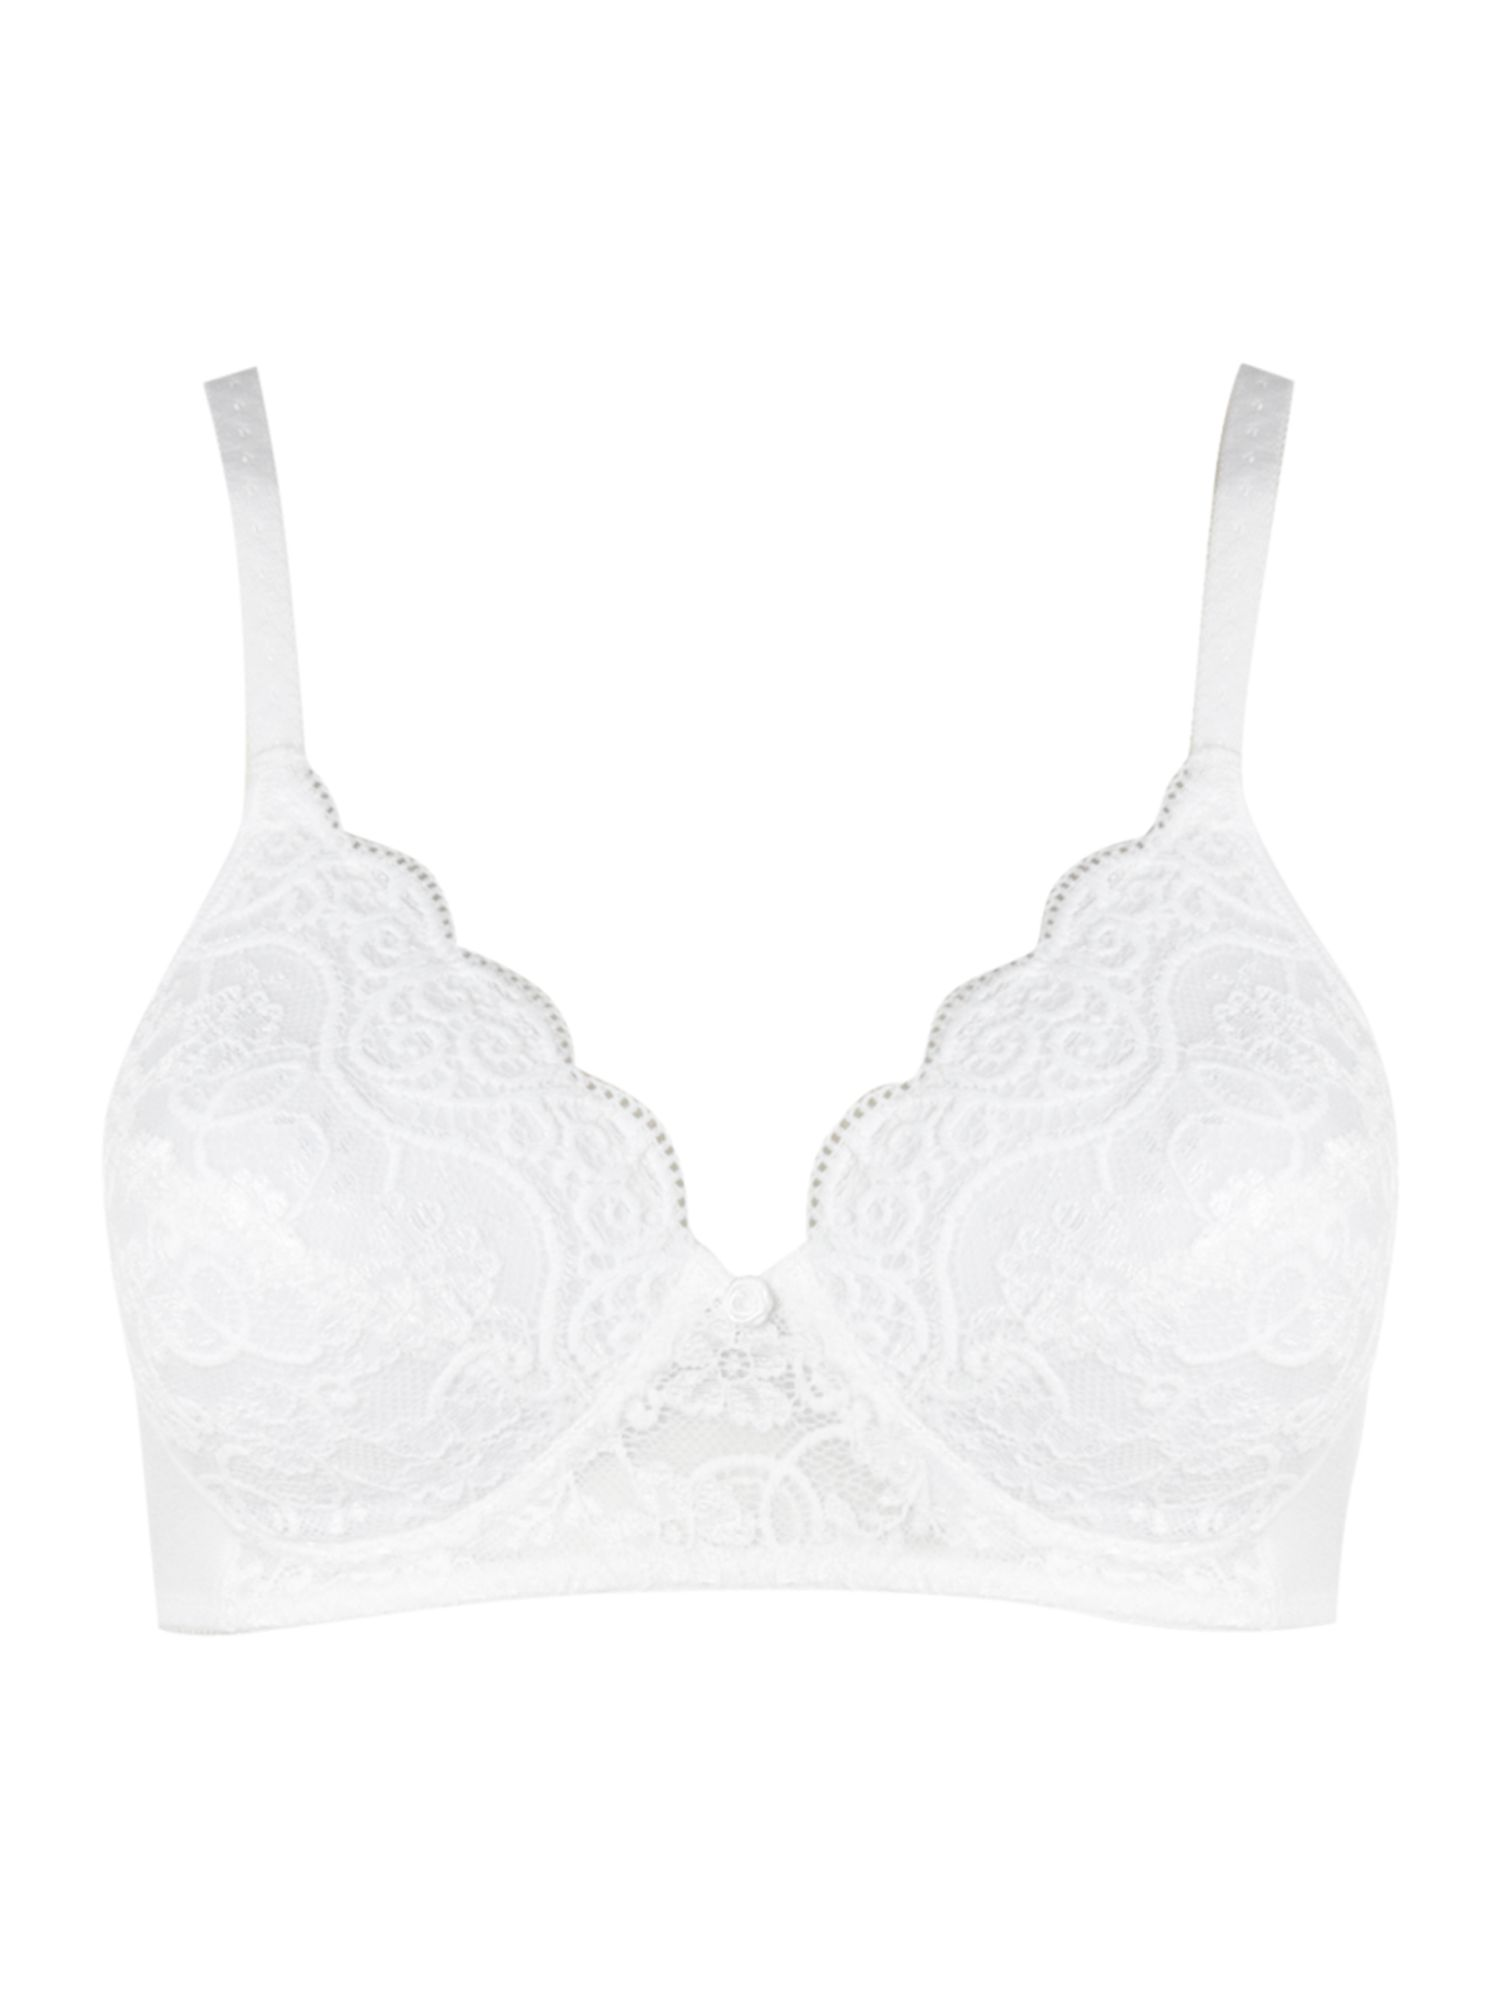 Amourette 300 padded non wired bra